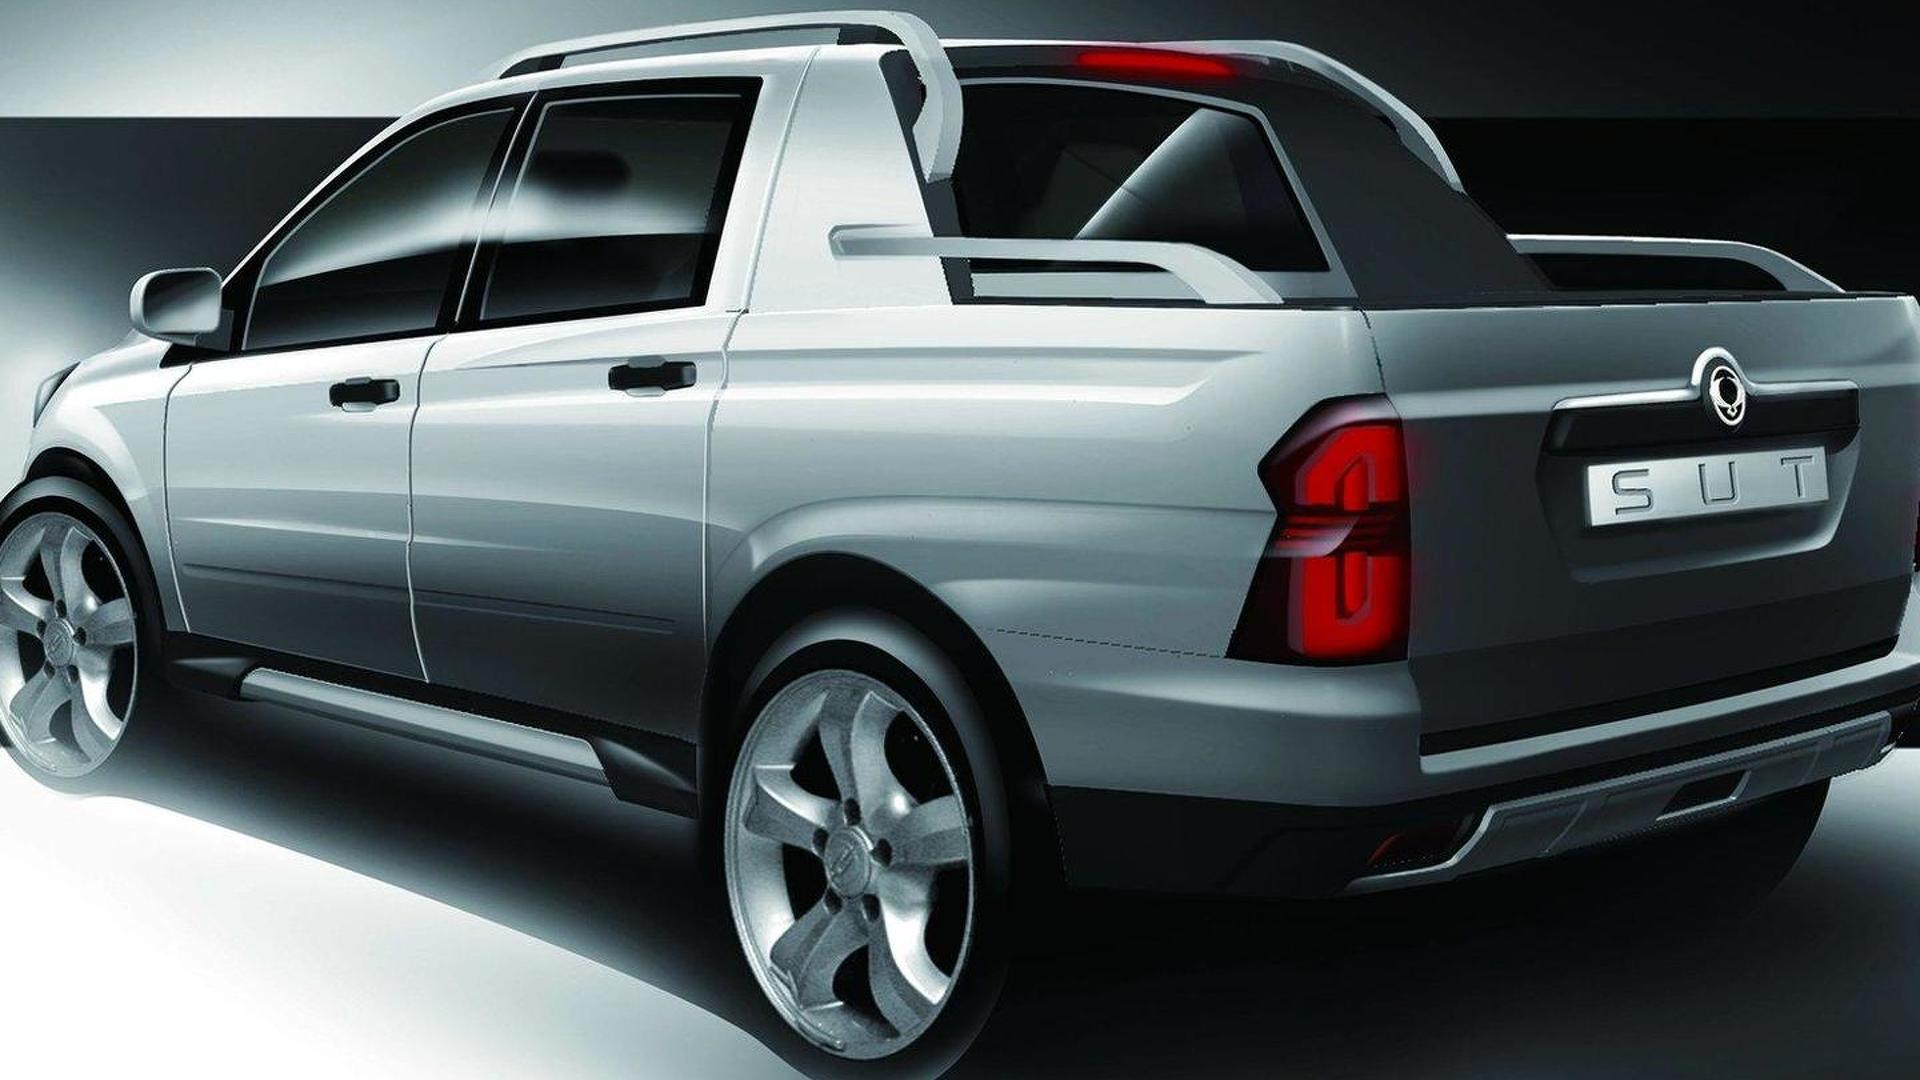 SsangYong SUT 1 Concept set for Geneva debut